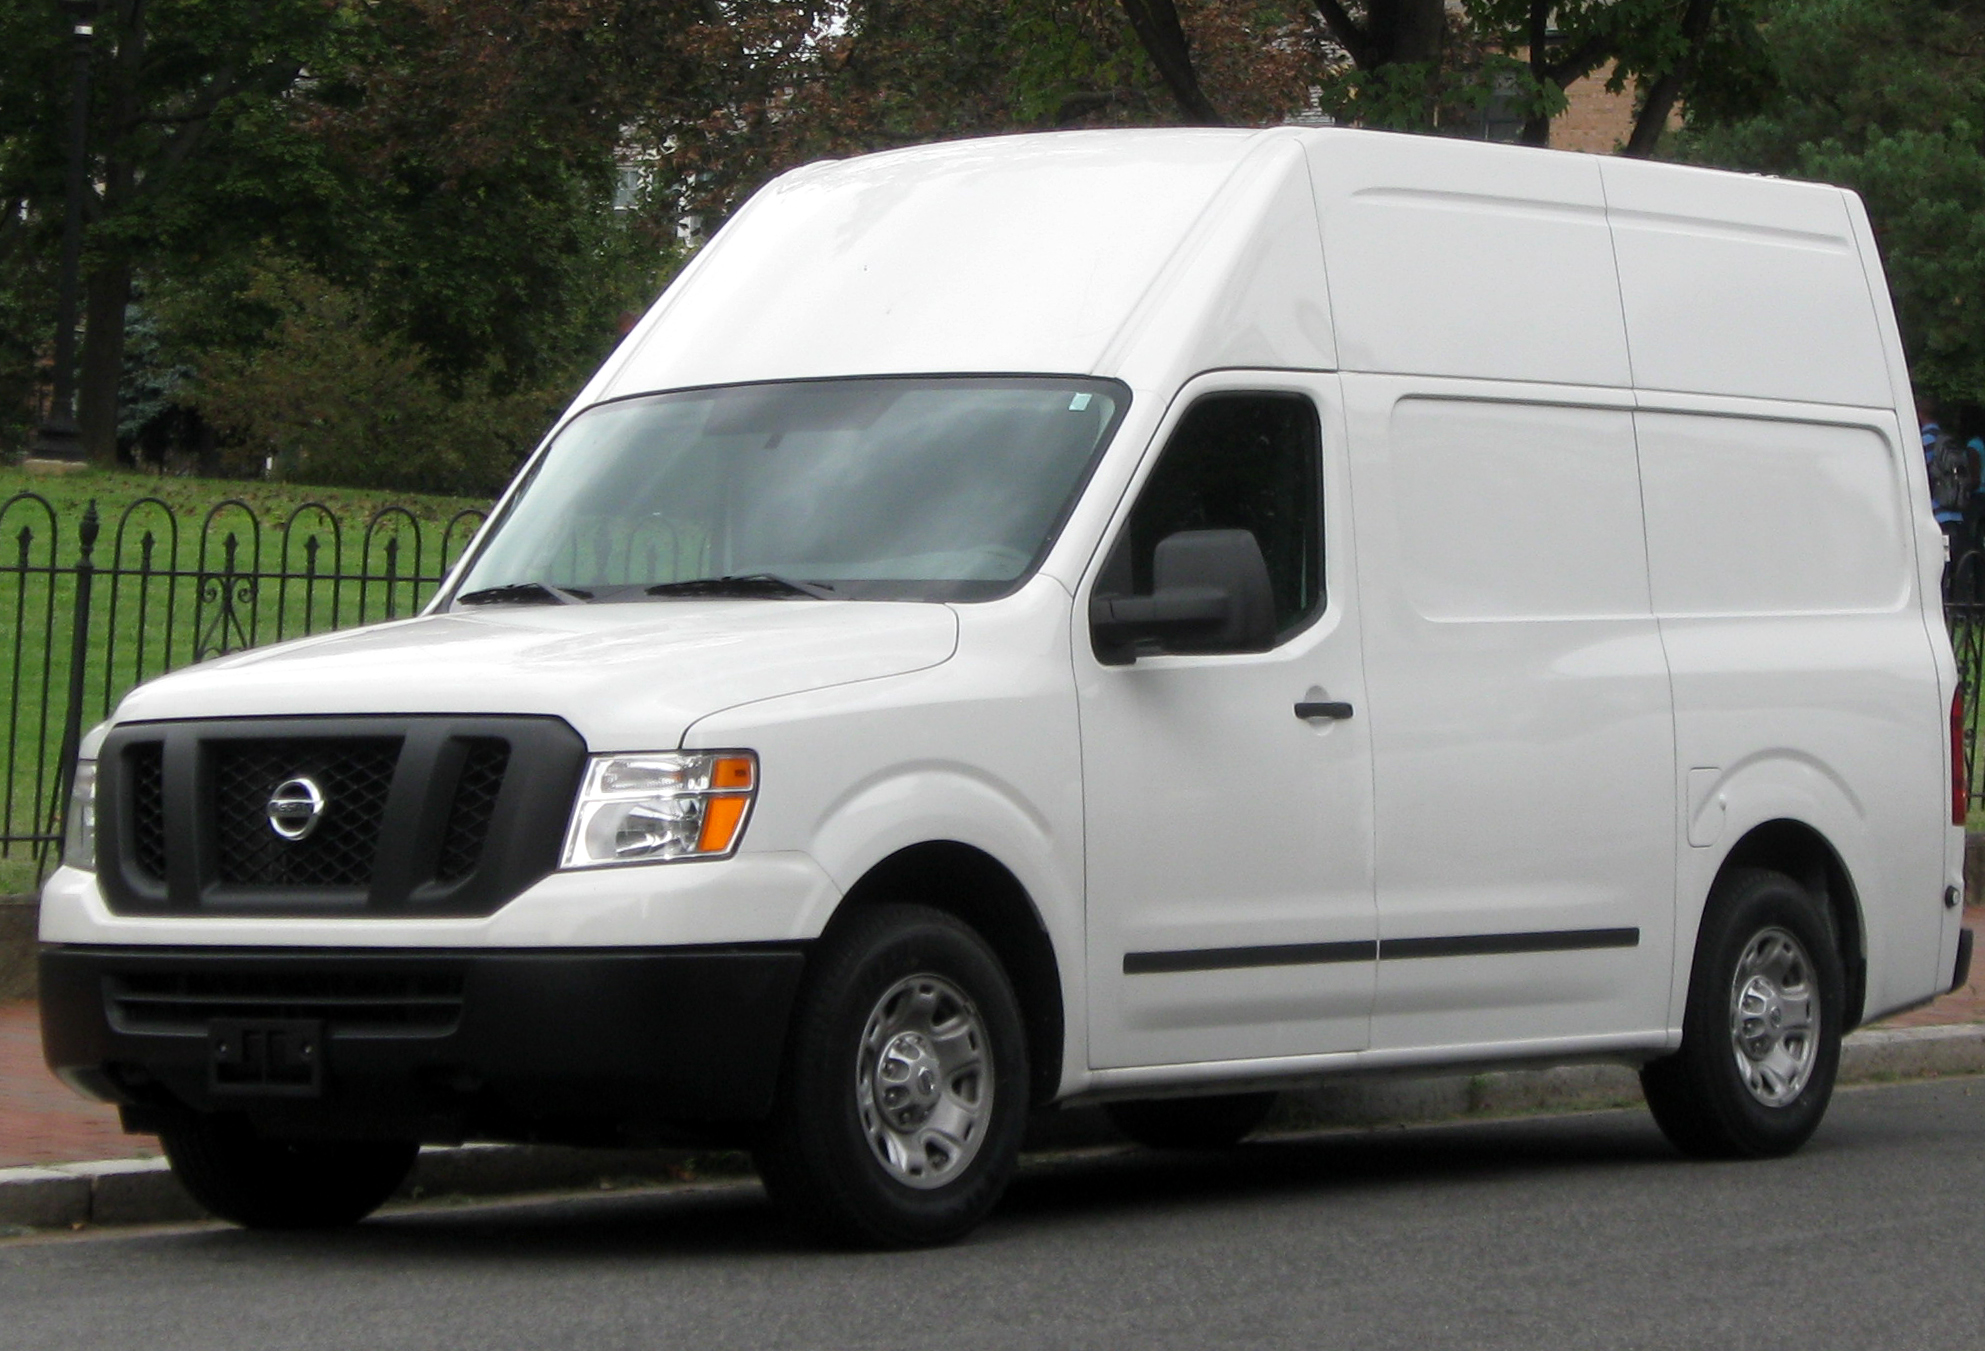 File:2012 Nissan NV 2500 HD -- 09-15-2011.jpg - Wikimedia Commons